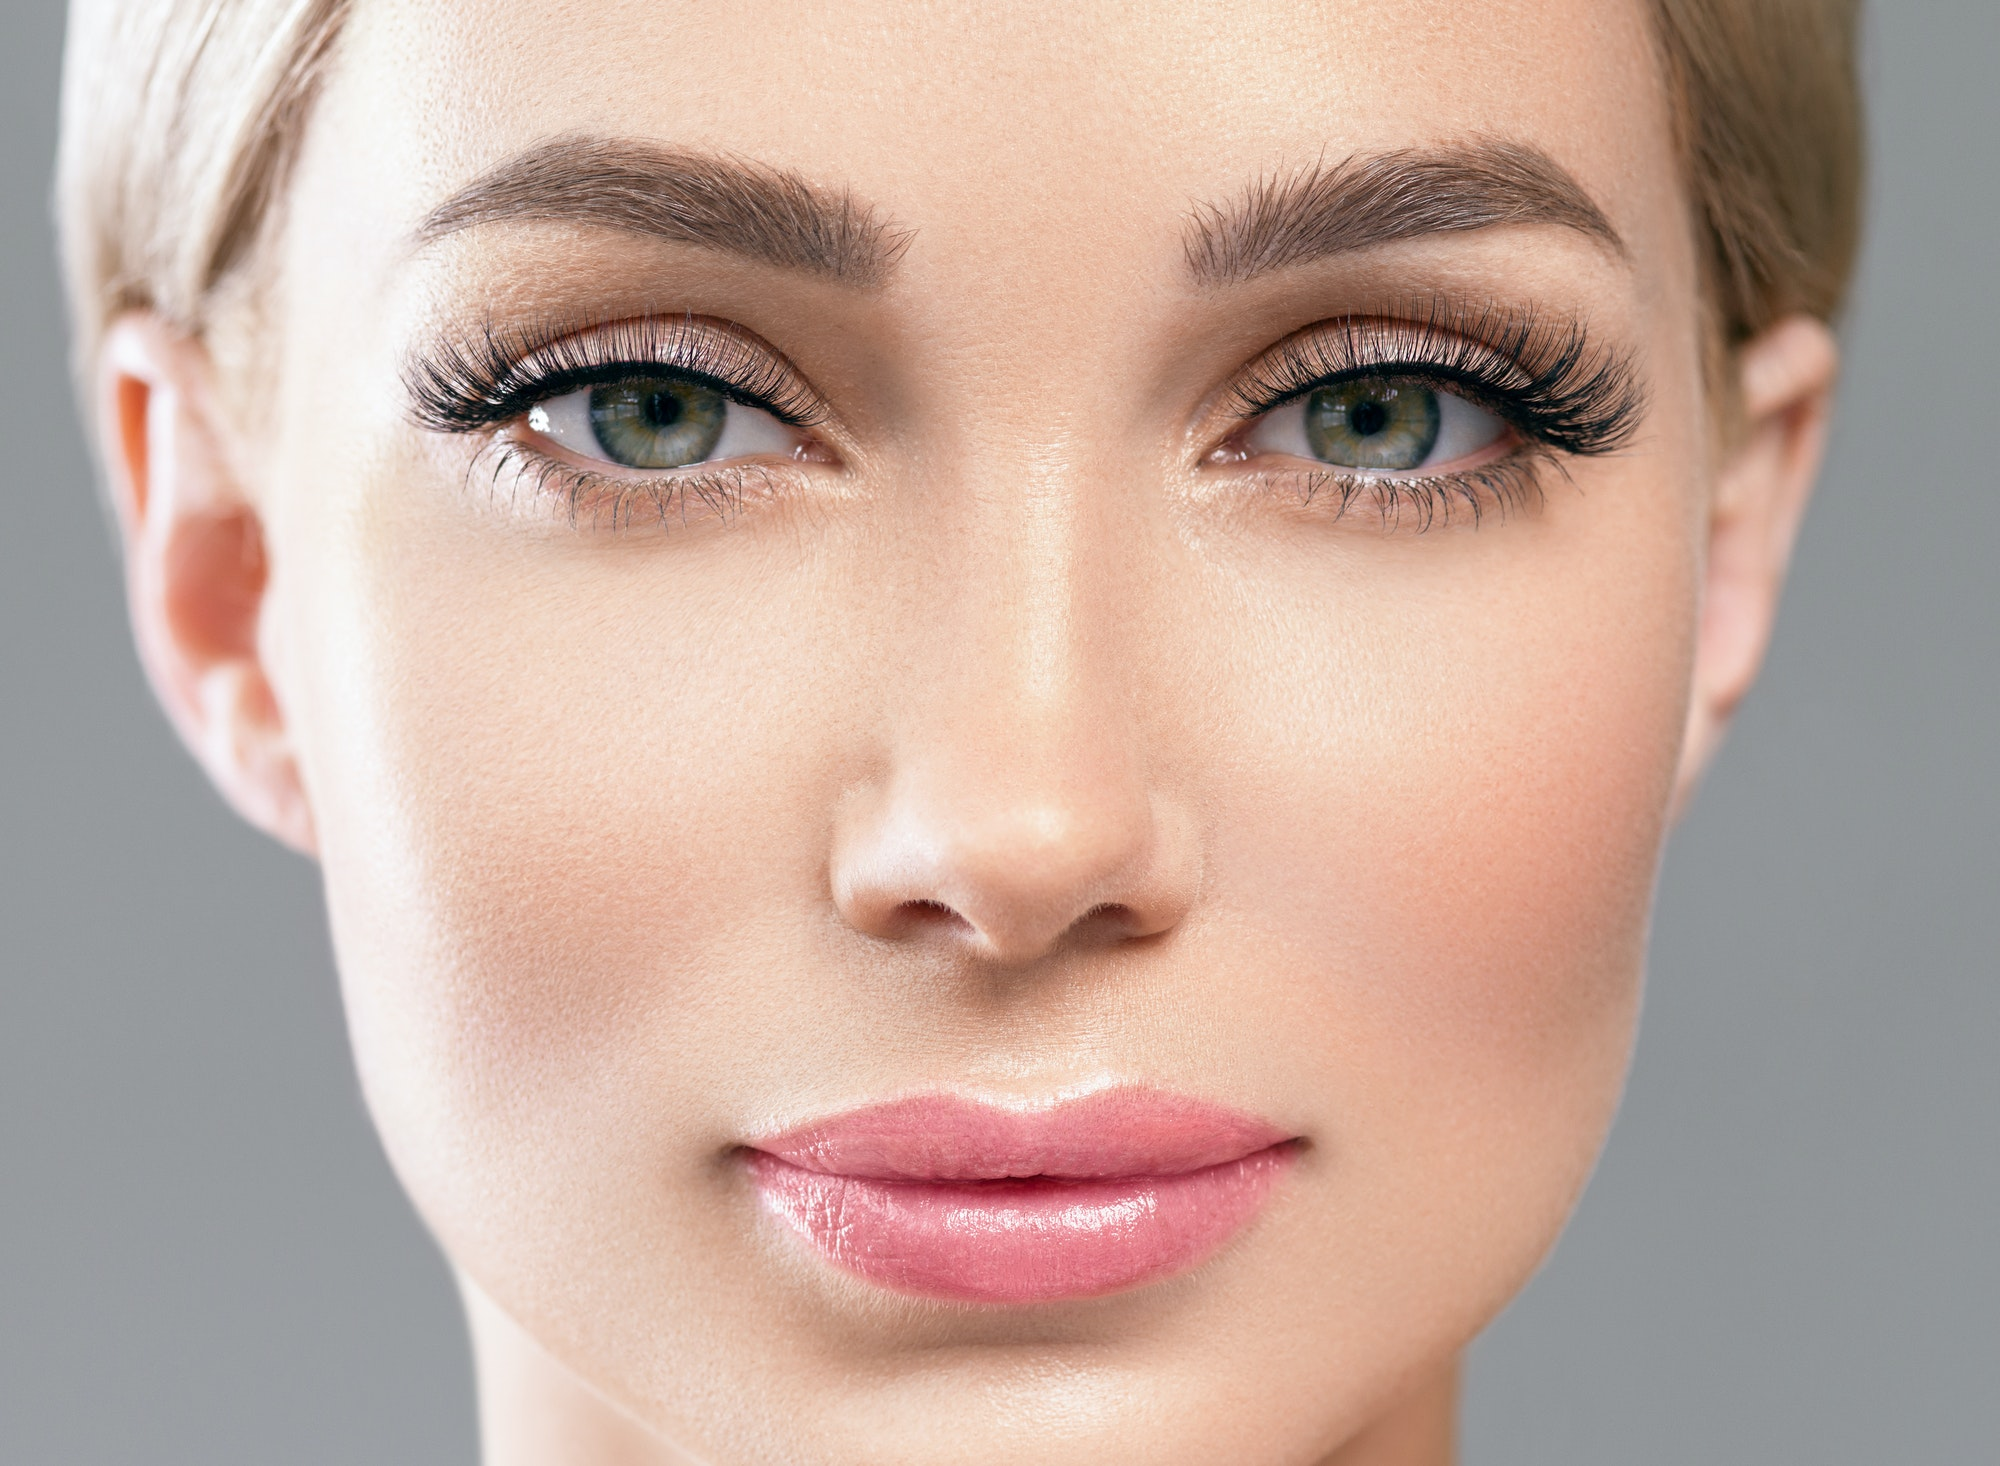 Lashes extension beauty pink lipstick blonde woman